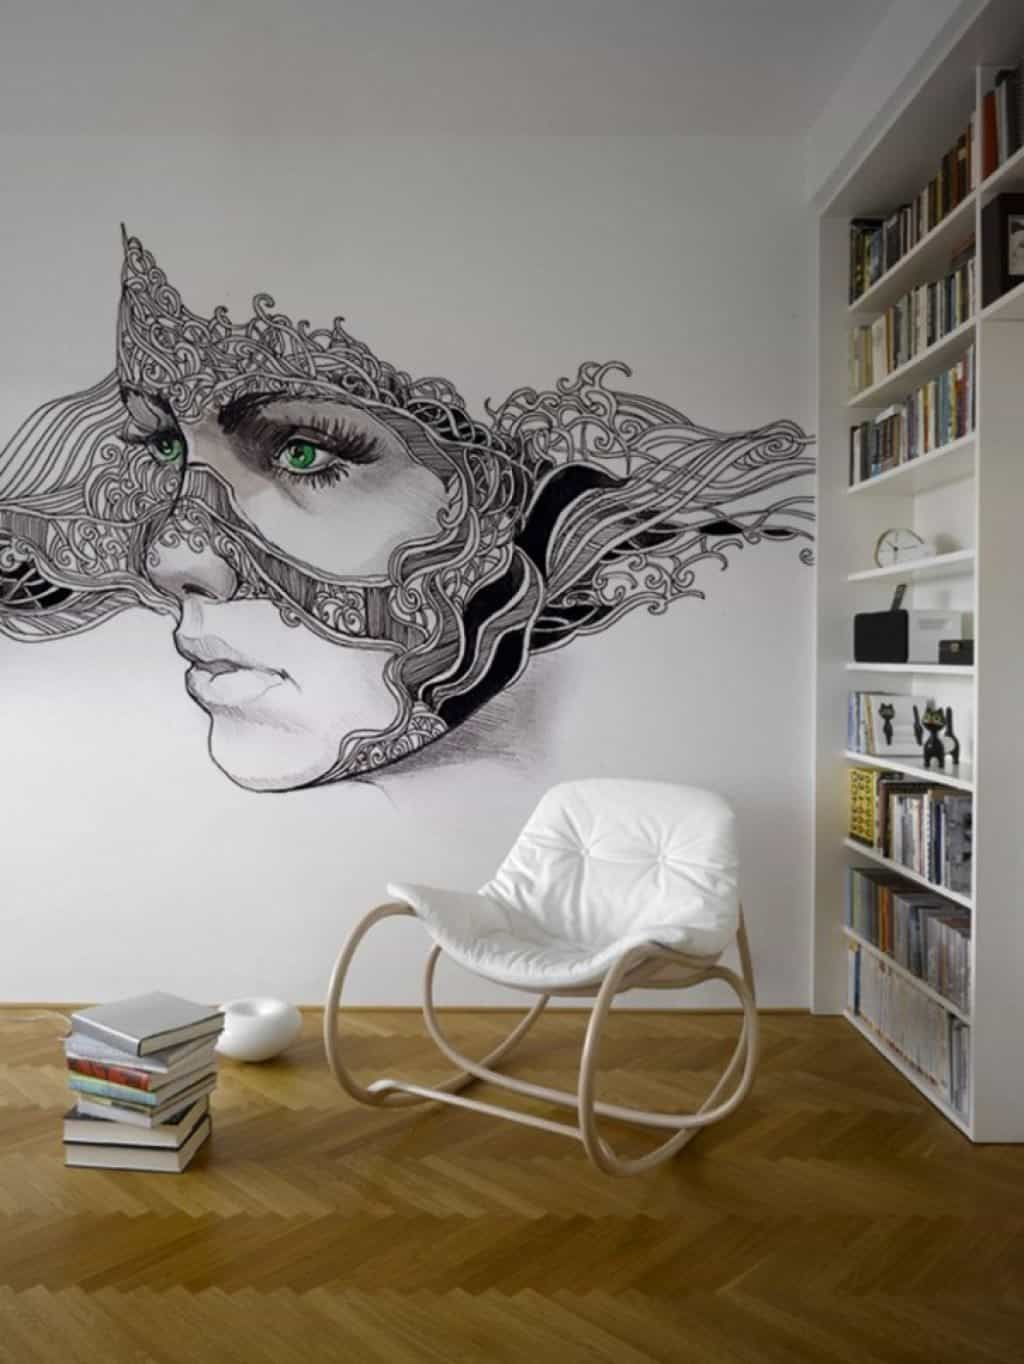 Small Home Library Decorated With Artistic Wall Mural : Enhance The Look Of Your House With A Wall Mural